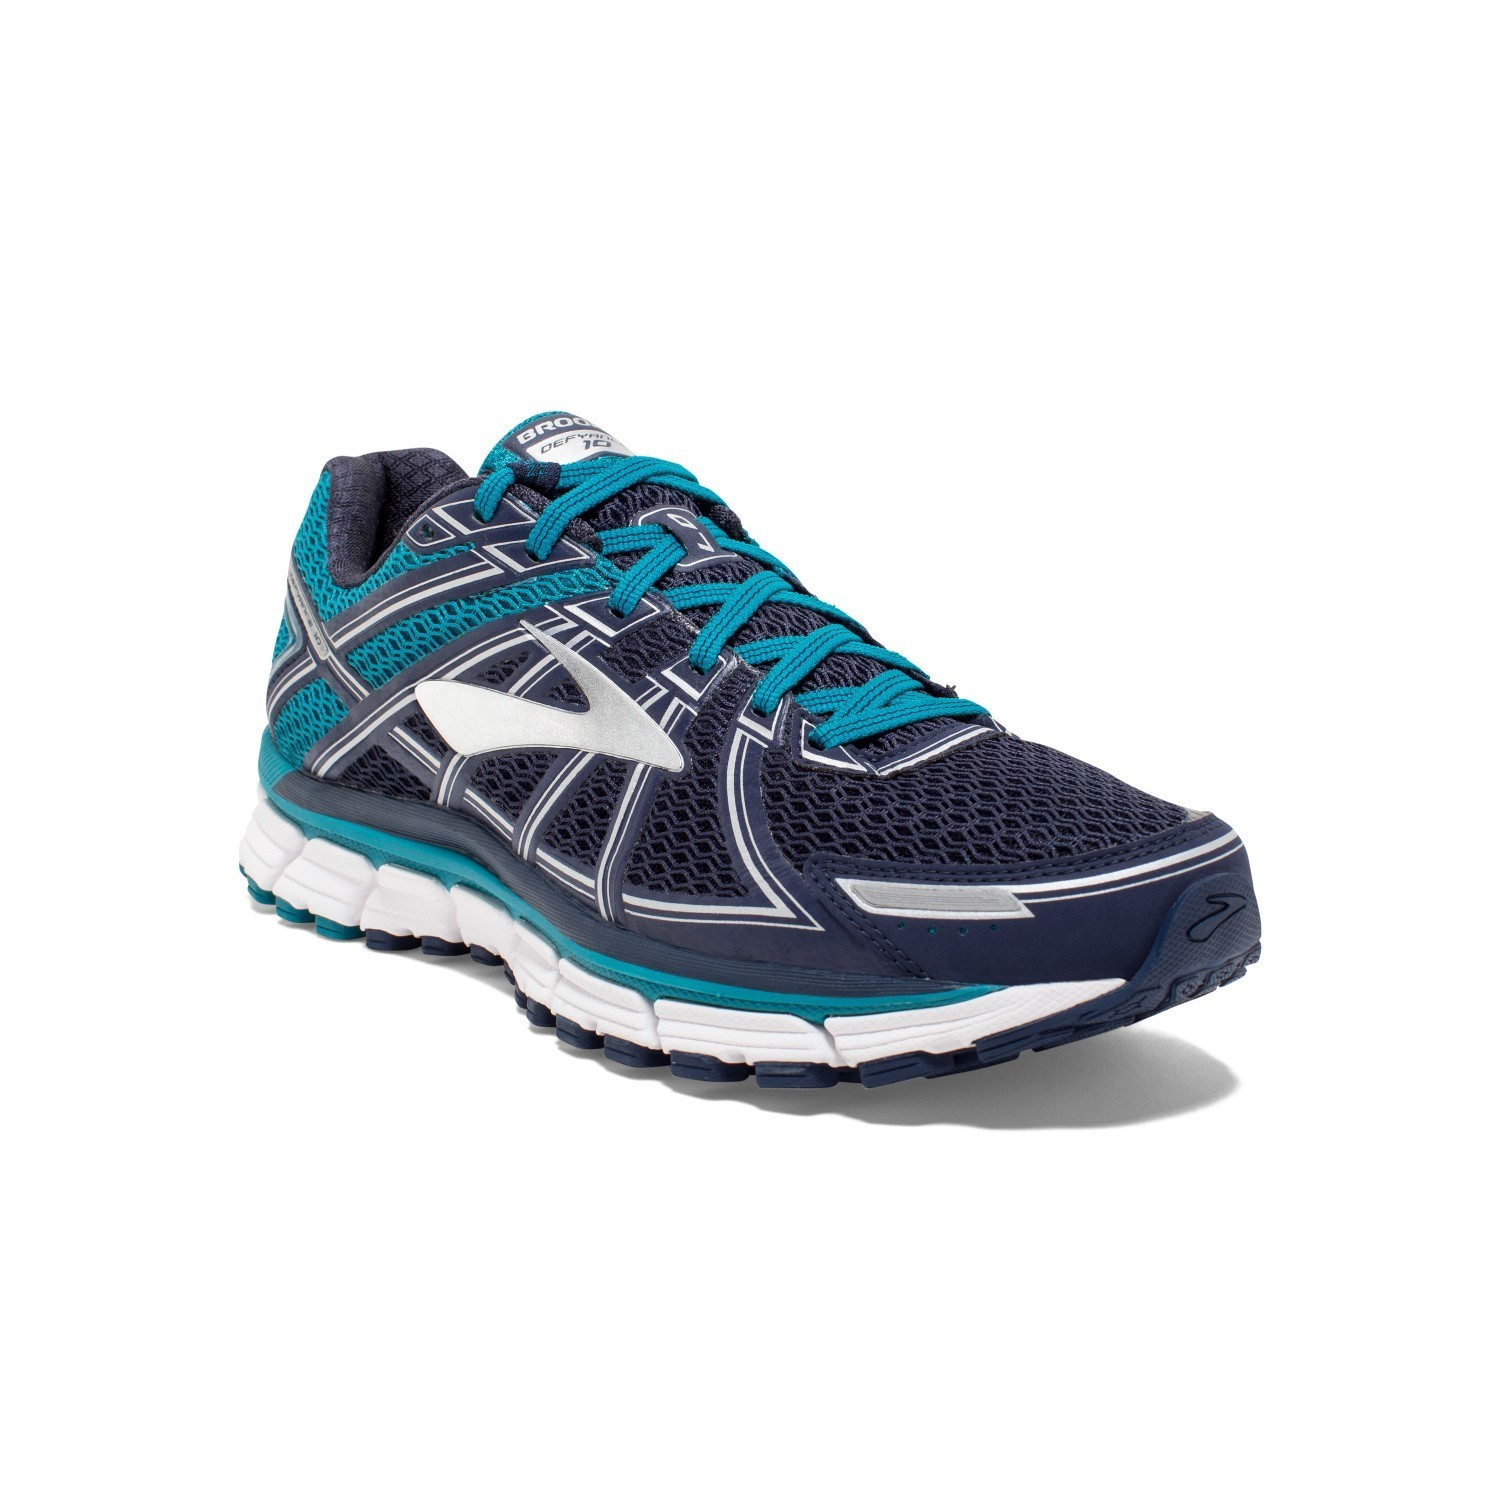 21424016ce0a1 Brooks Defyance 10 - Mens Running Shoes - Tahitian Navy White ...